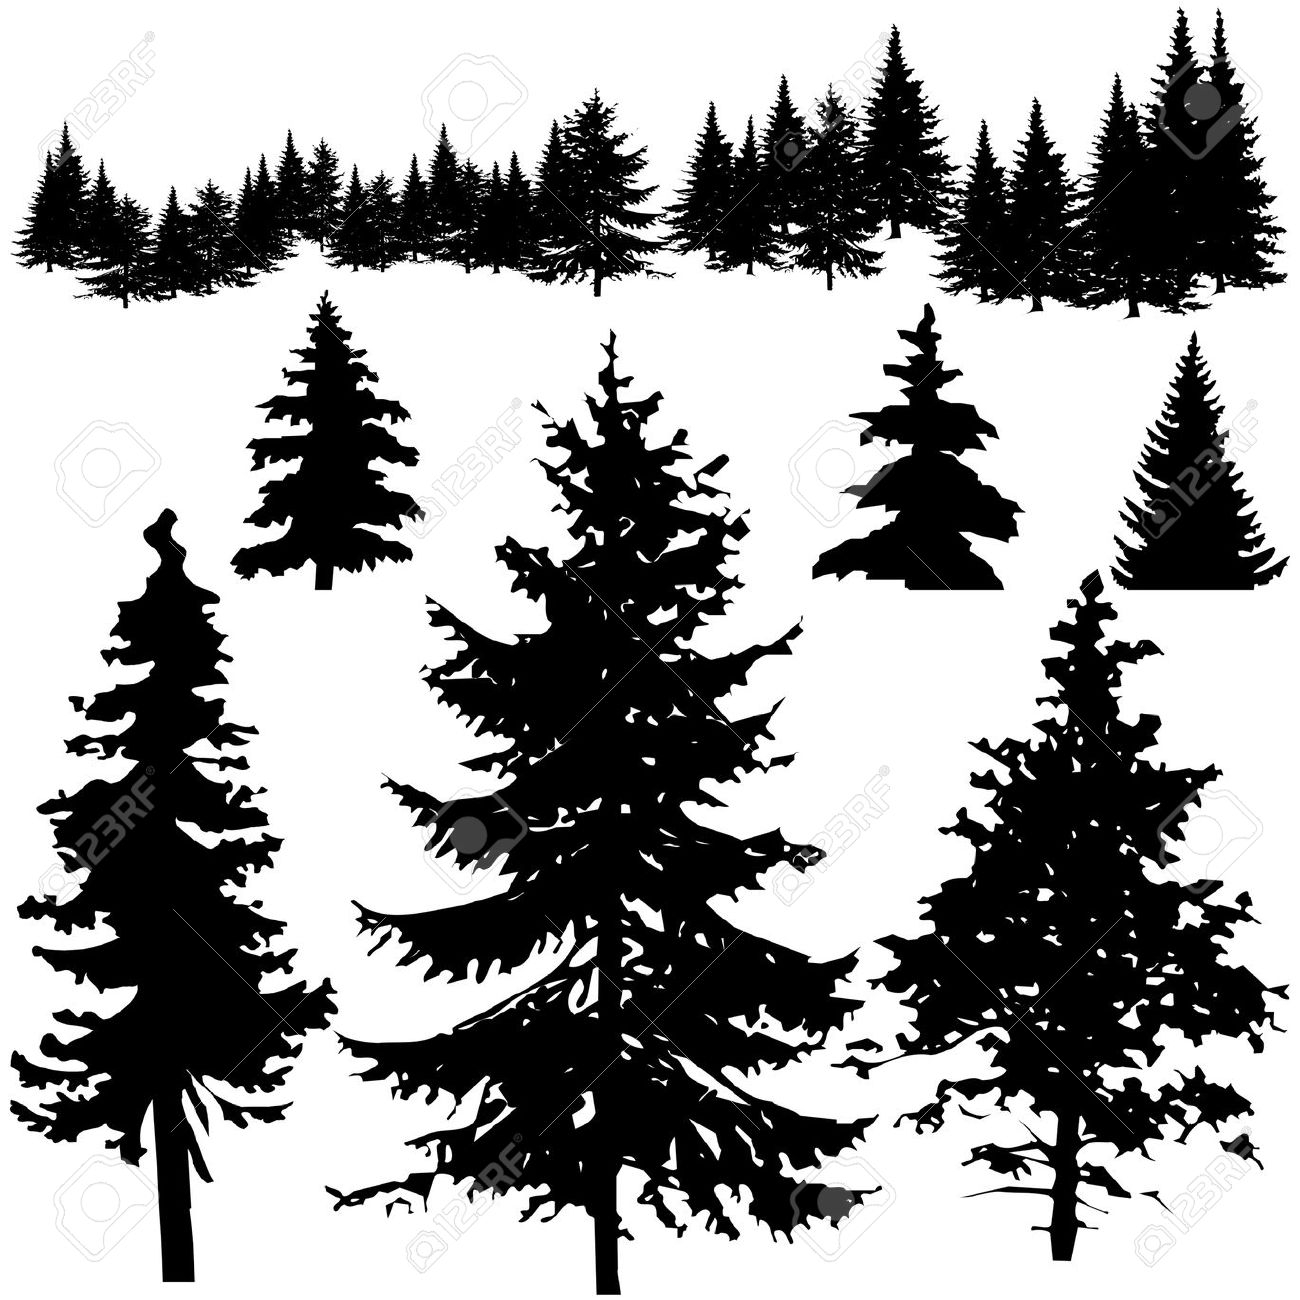 2 clipart pine tree. Silhouette cliparting com